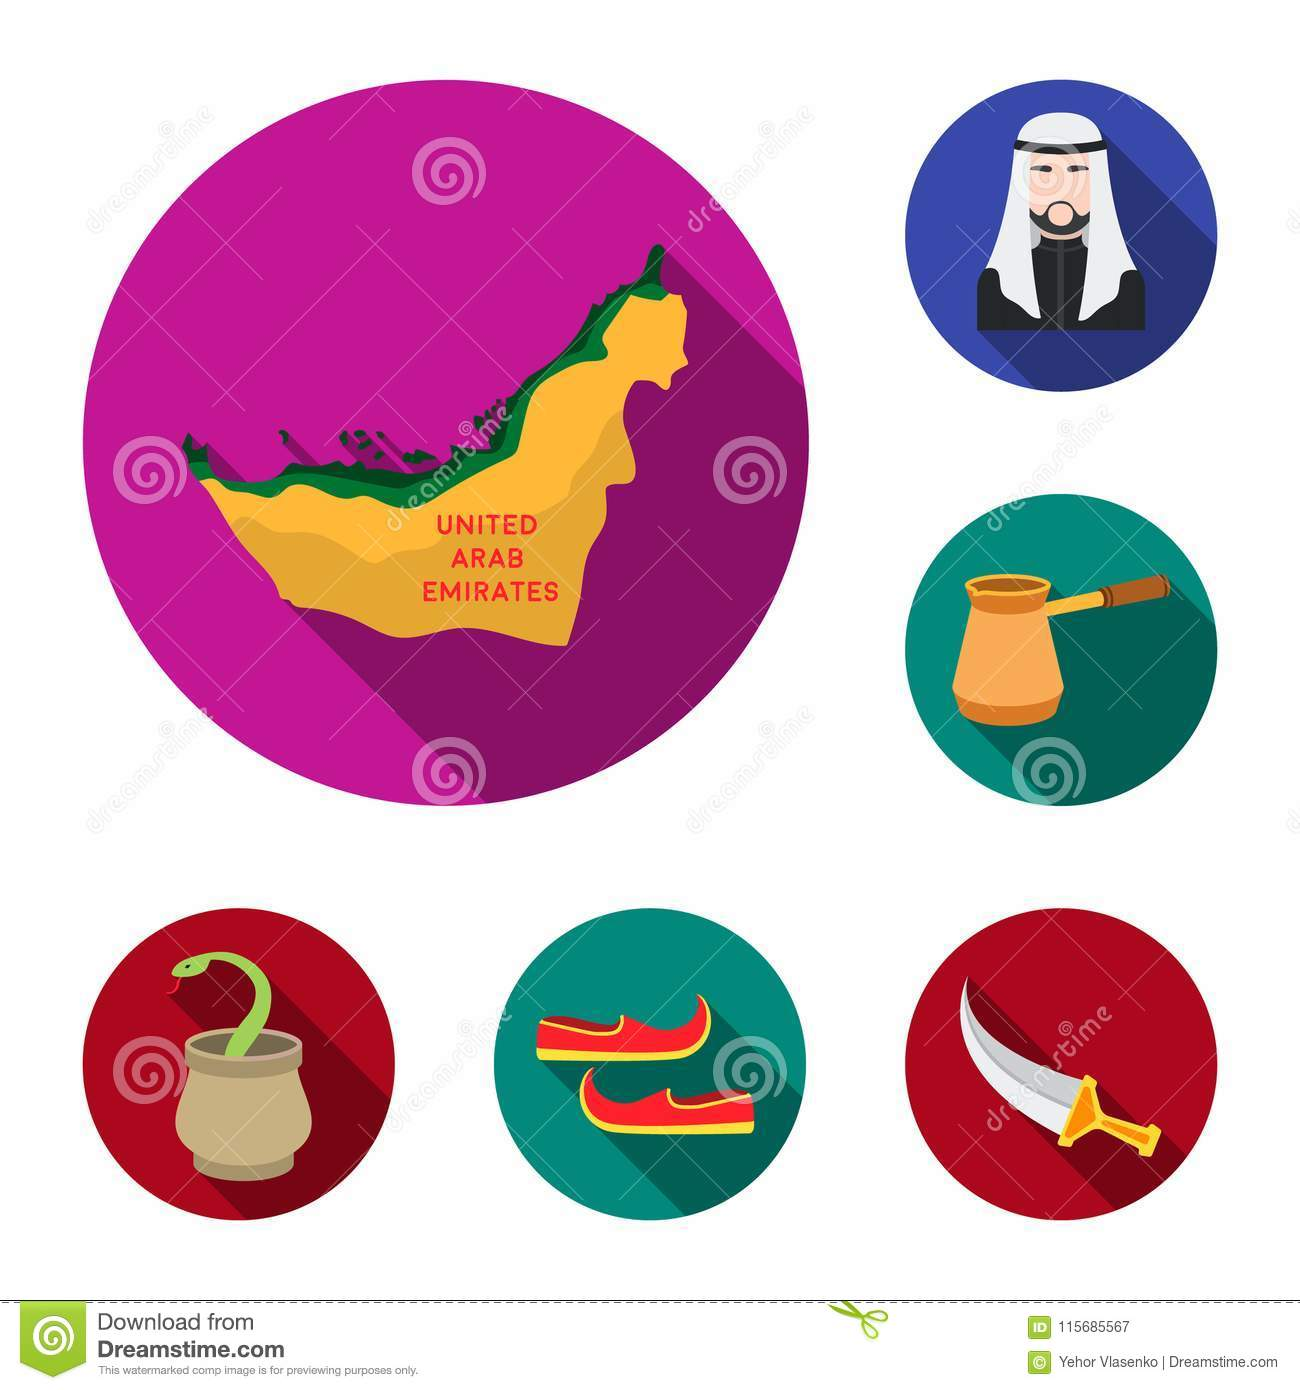 Country United Arab Emirates Flat Icons In Set Collection For Design